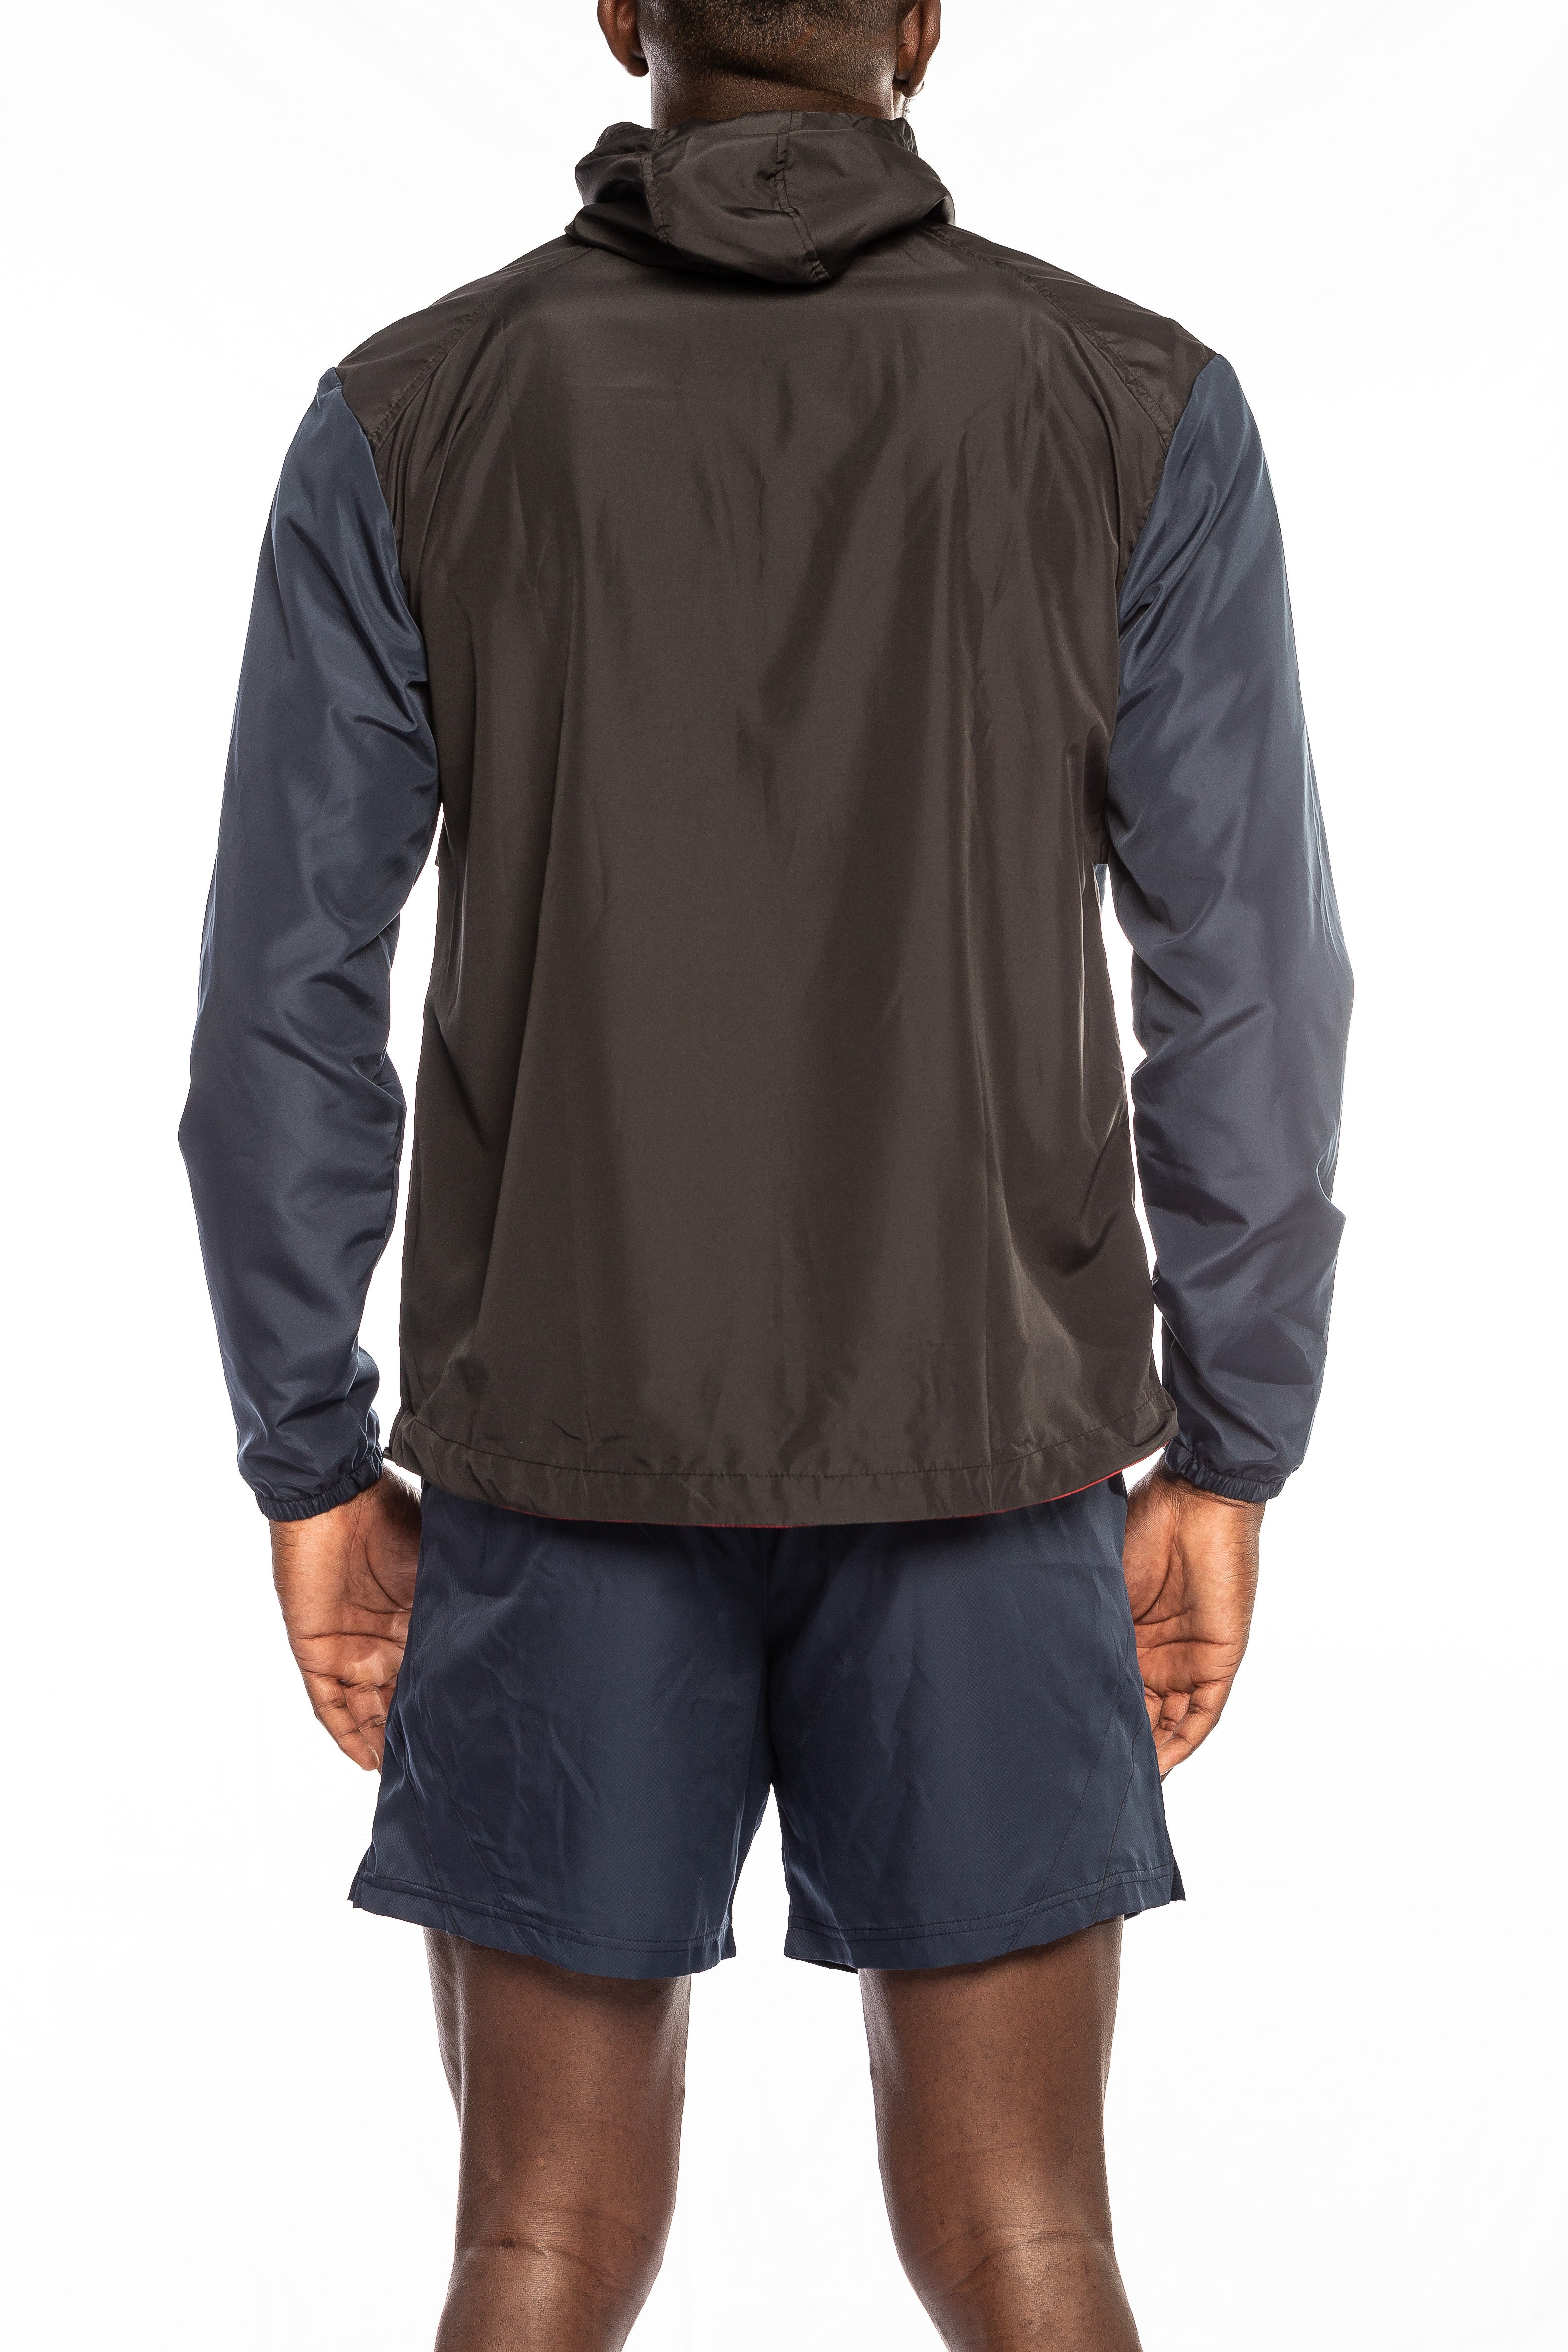 Men's Discovery Windbreaker